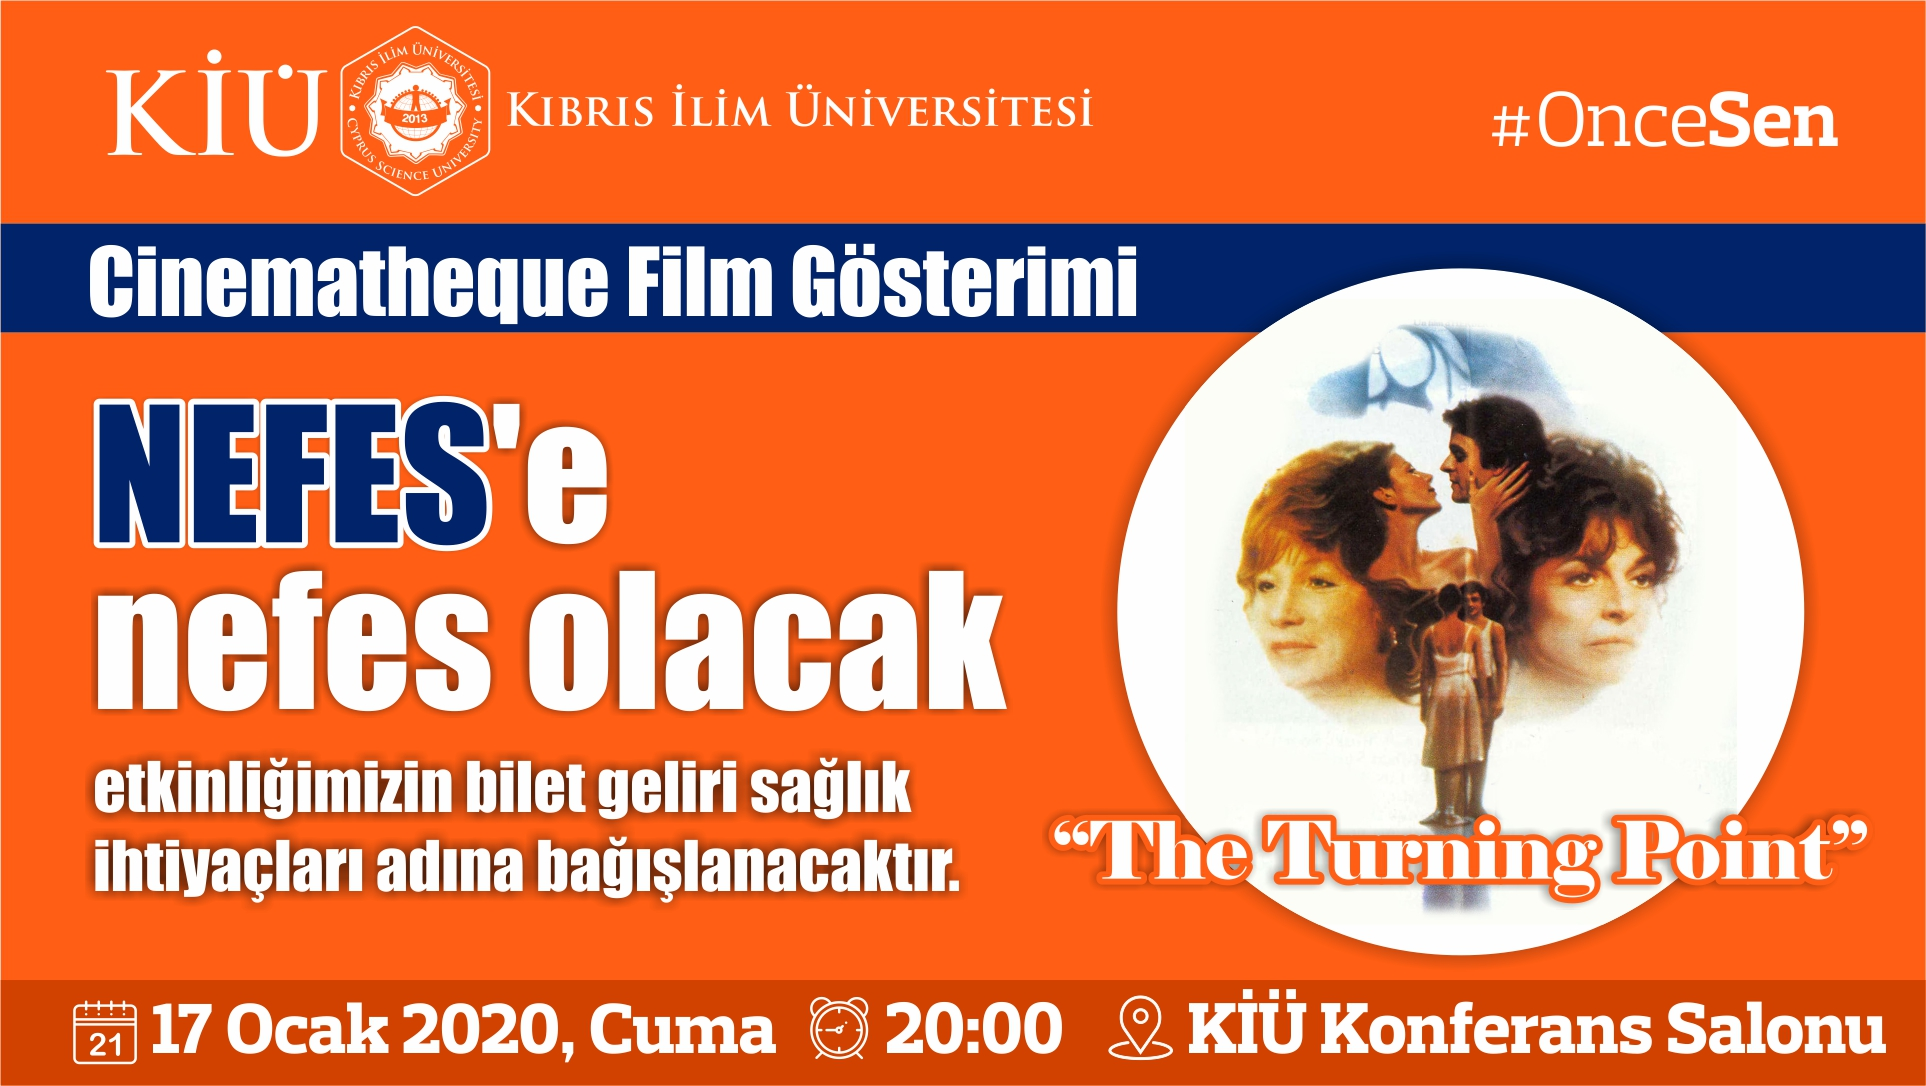 Cinematheque Film Gösterimi